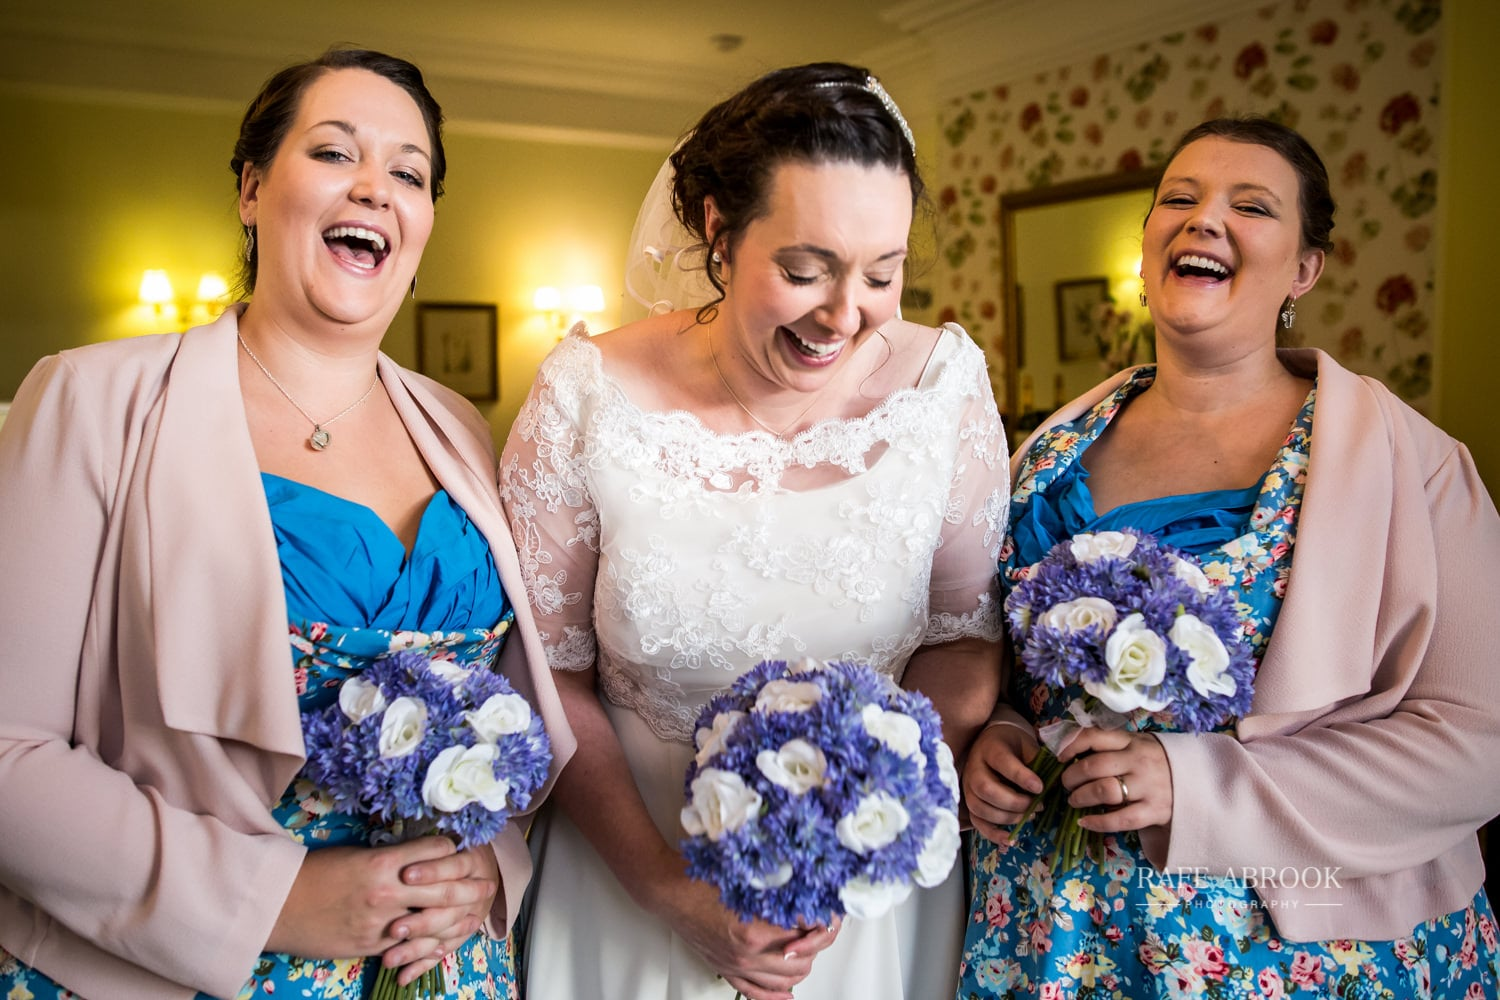 woodland manor hotel clapham bedford wedding hertfordshire wedding photographer-1059.jpg